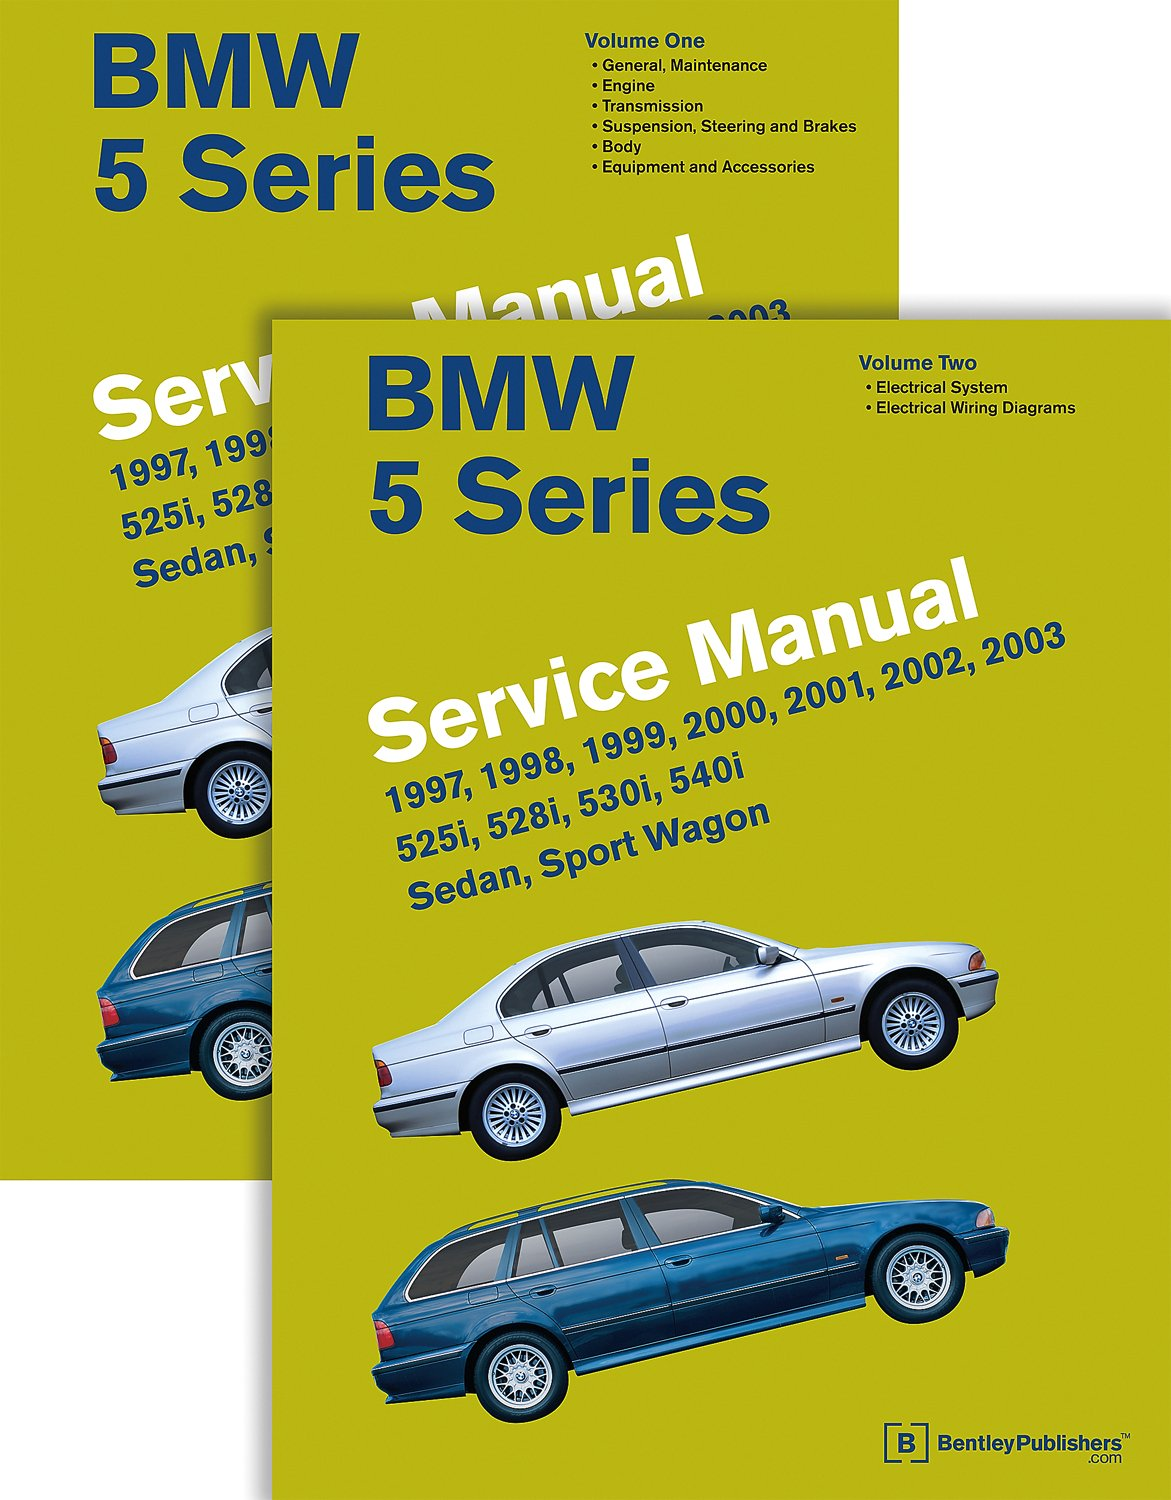 1997 Bmw 540i Wiring Diagram Library Amp 528i 5 Series 2 Vol E39 Service Manual 1998 1999 2000